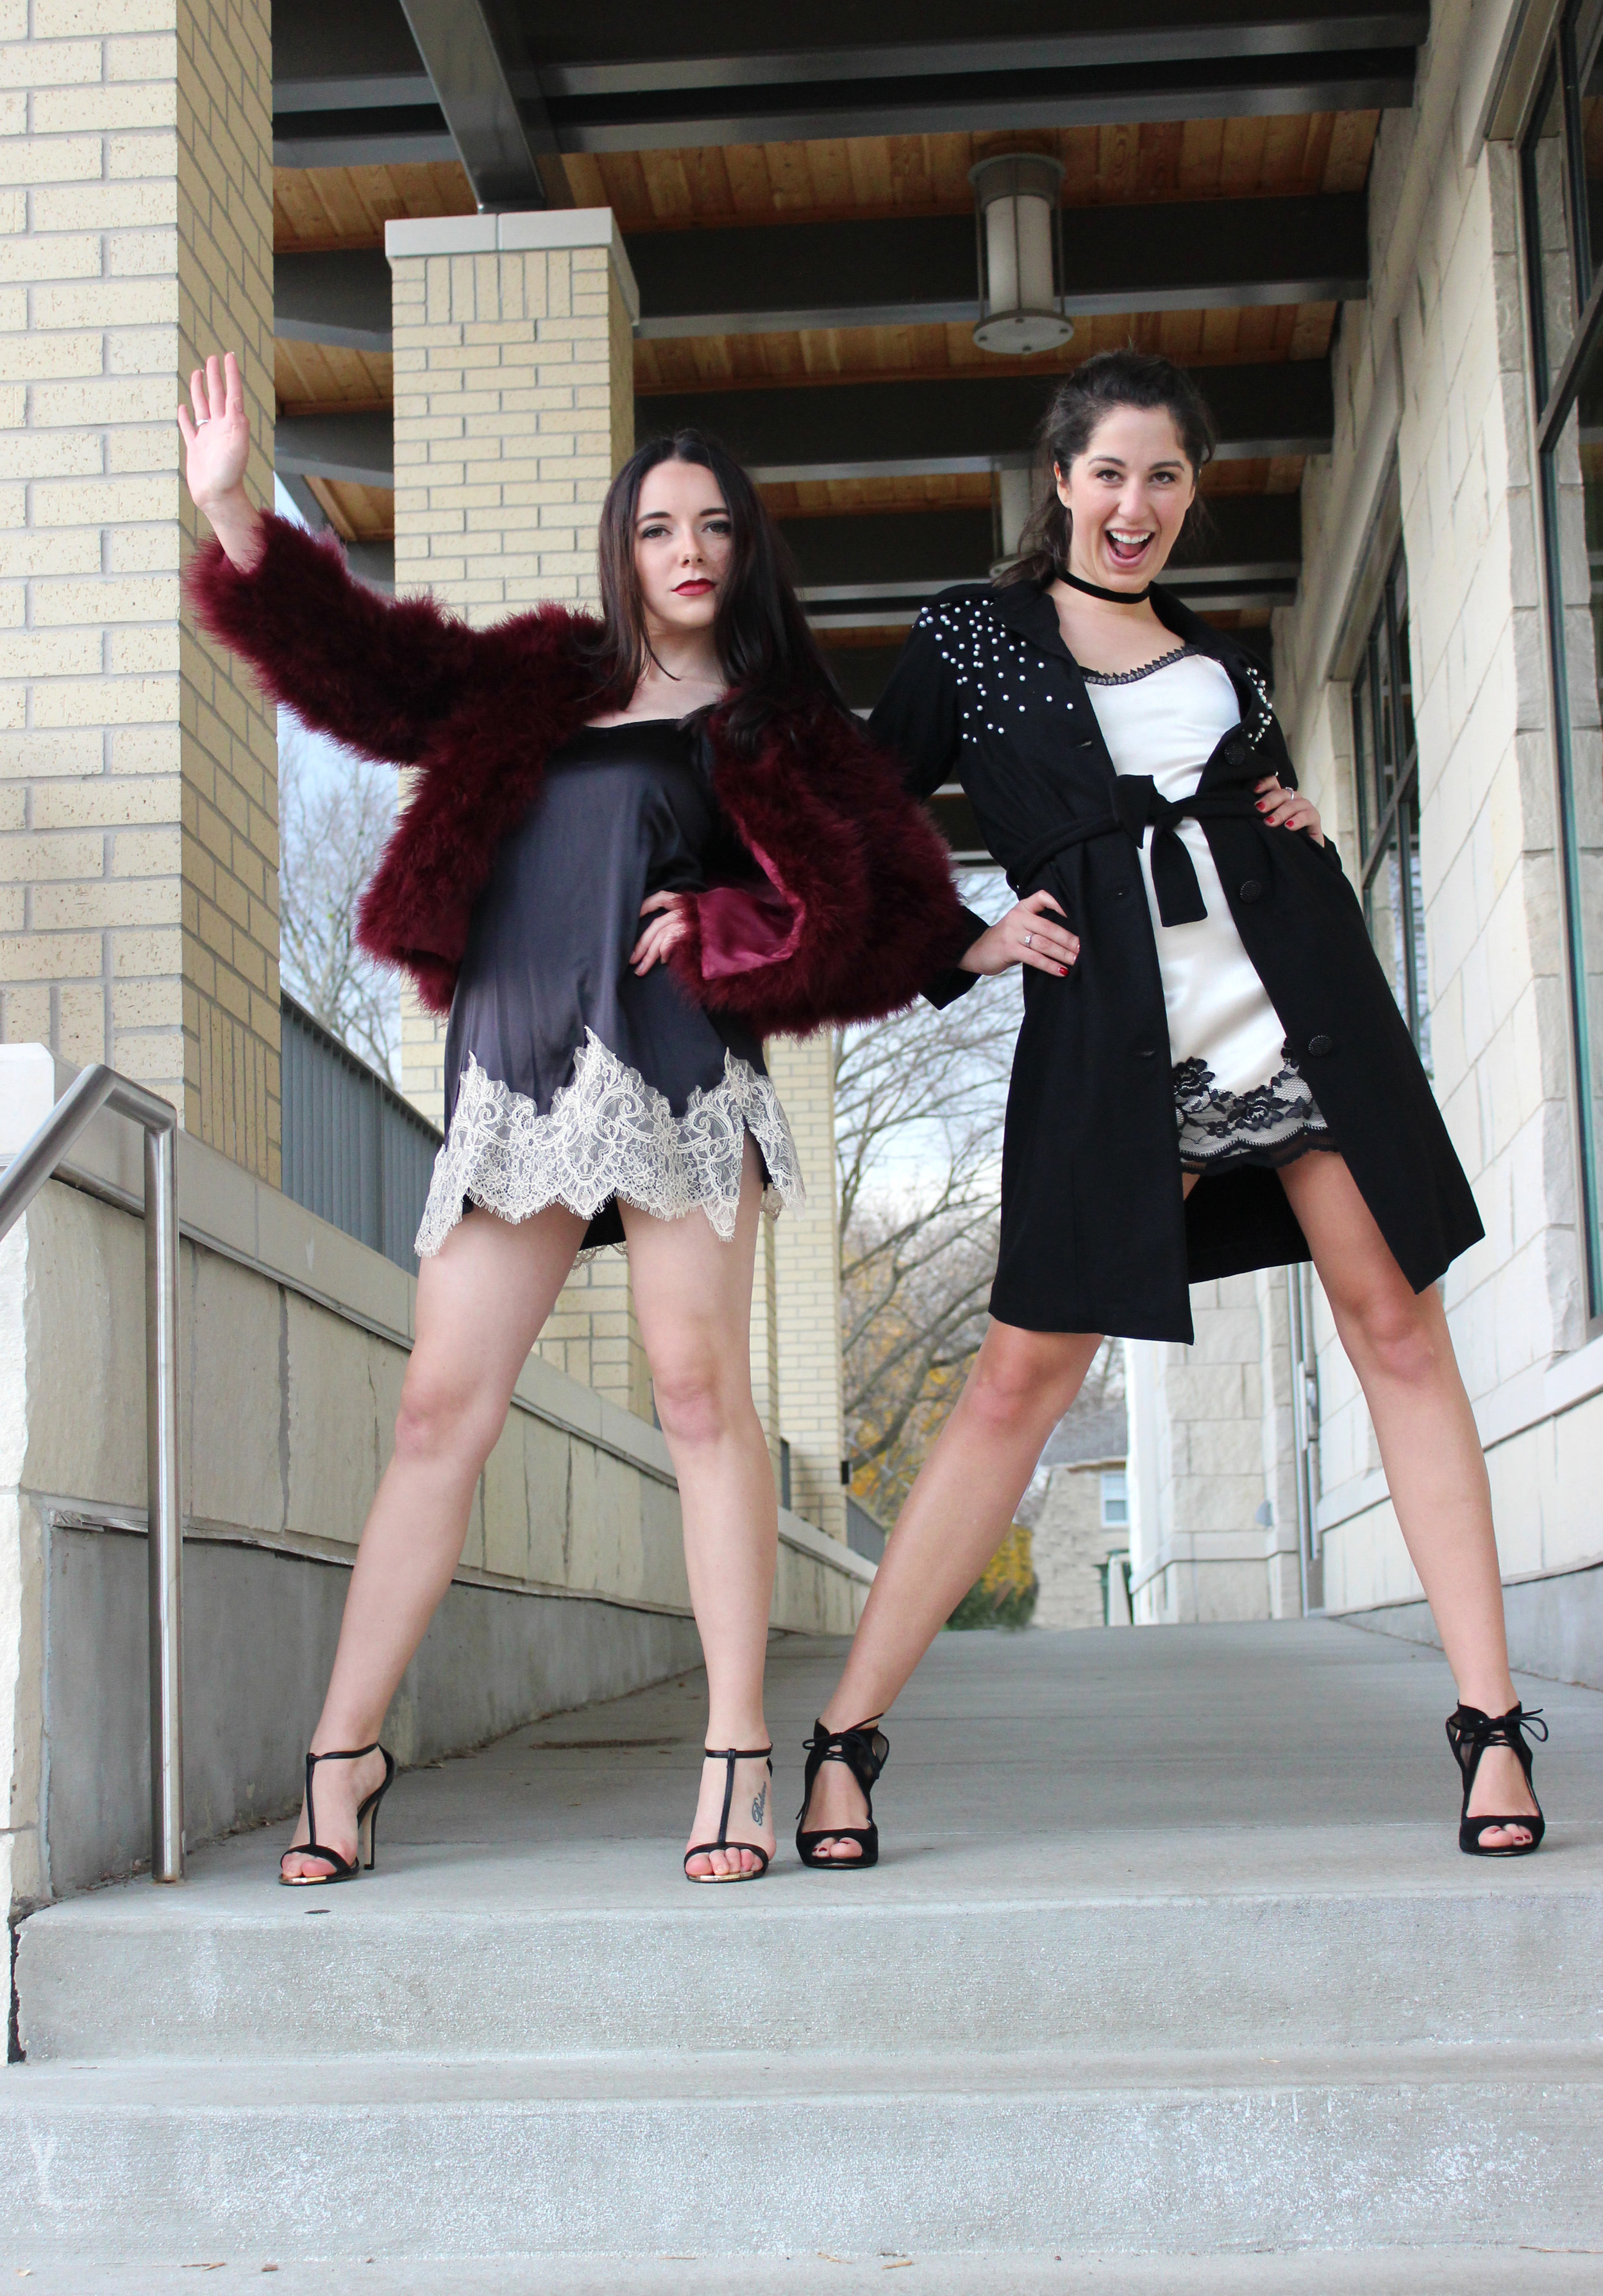 Courtney Pelot +Madalyn Manzeck photographed by  Cassie Sterwald  in Cedarburg, WI in 2016.  Slips + Black Coat Madalyn Joy Designs   Feather Coat Line + Dot   Madalyn's Black Heels Nine West   Courtney's Black Heels Call It Spring